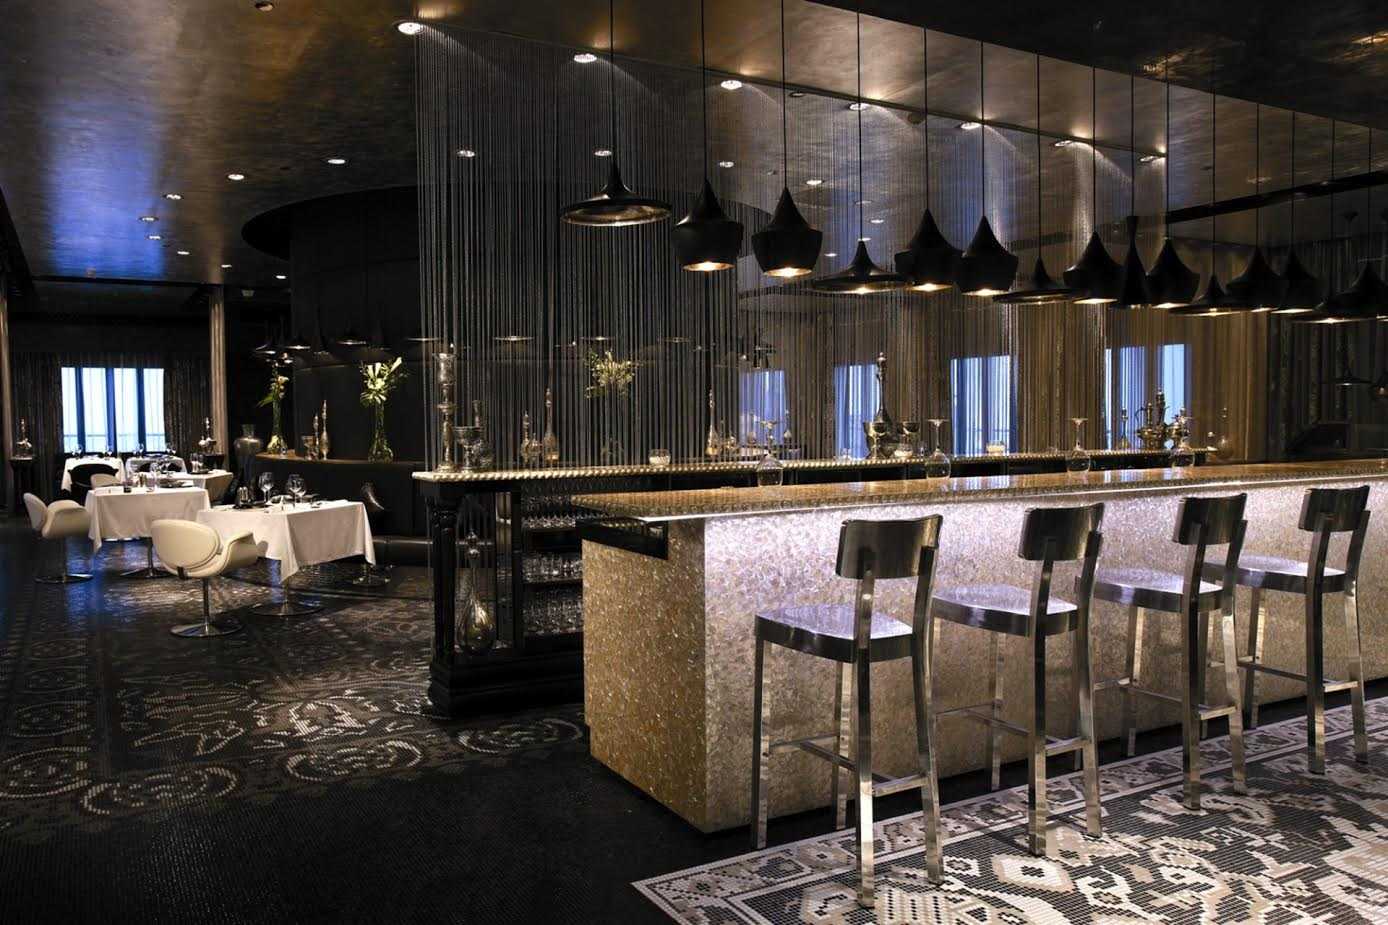 Pearls by Michael Caines - a comprehensive guide to Abu Dhabi